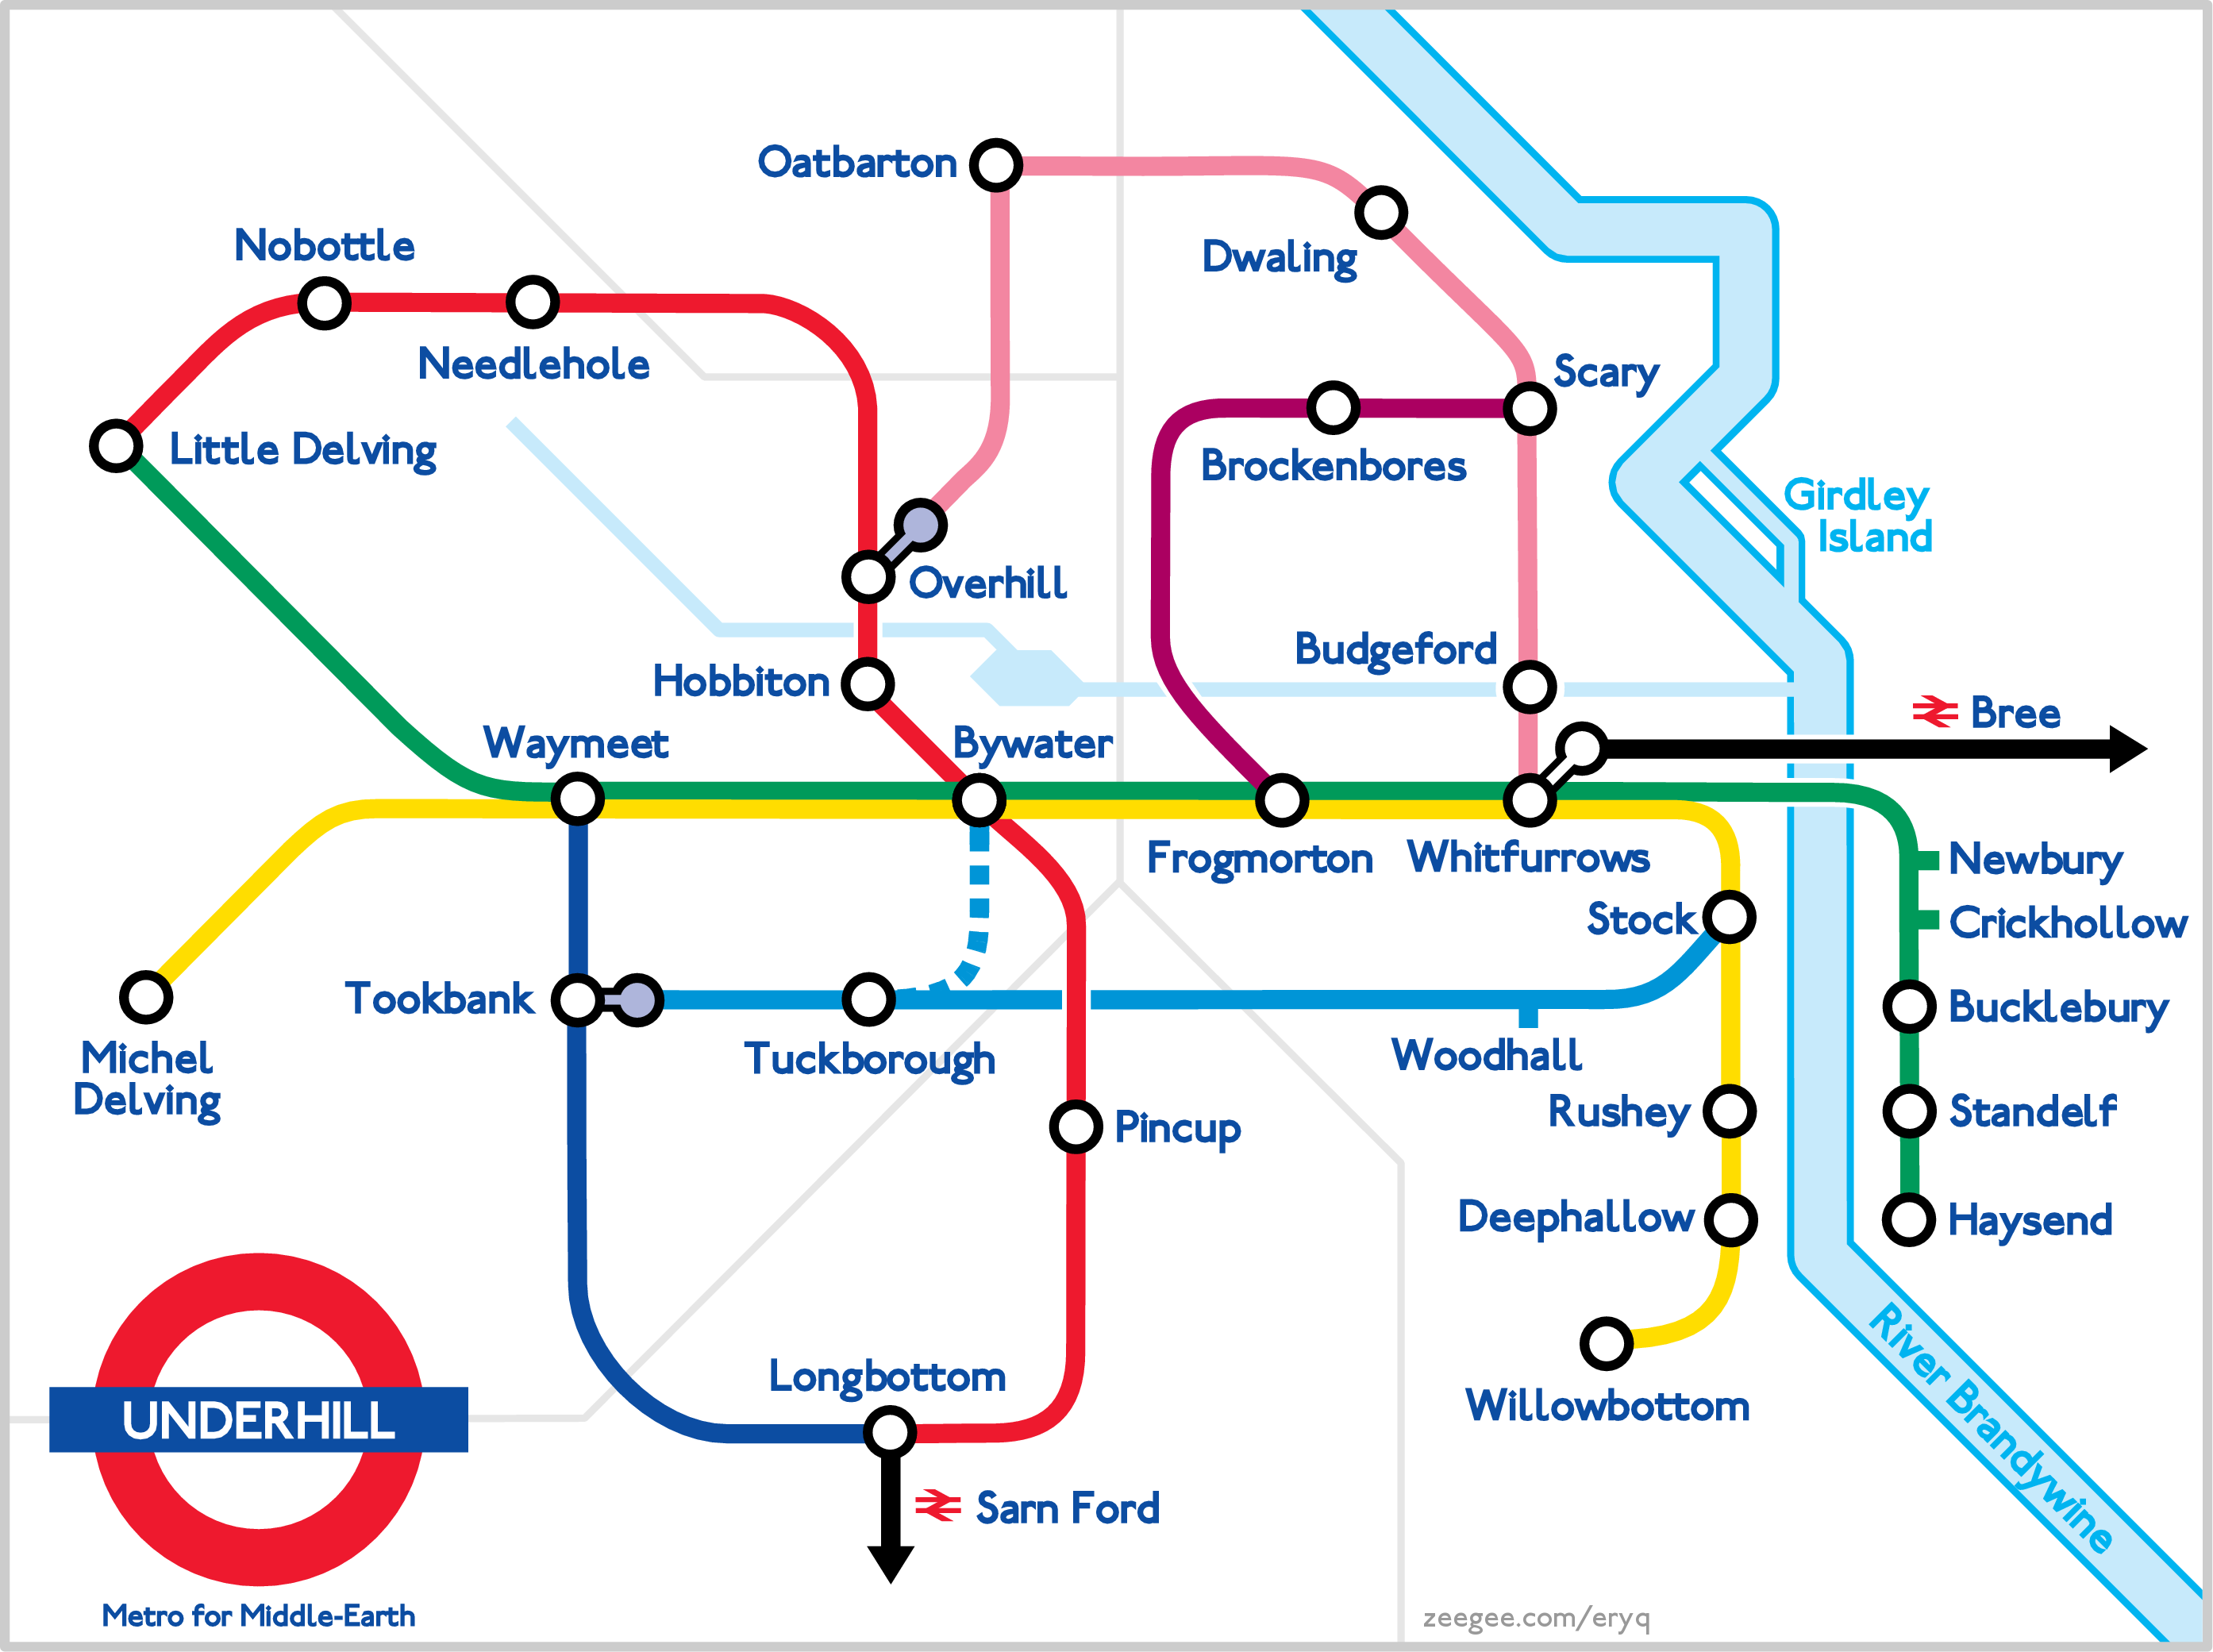 Rings Subway Map.Subway Map Of The Shire Magic Got It Middle Earth Fantasy Map